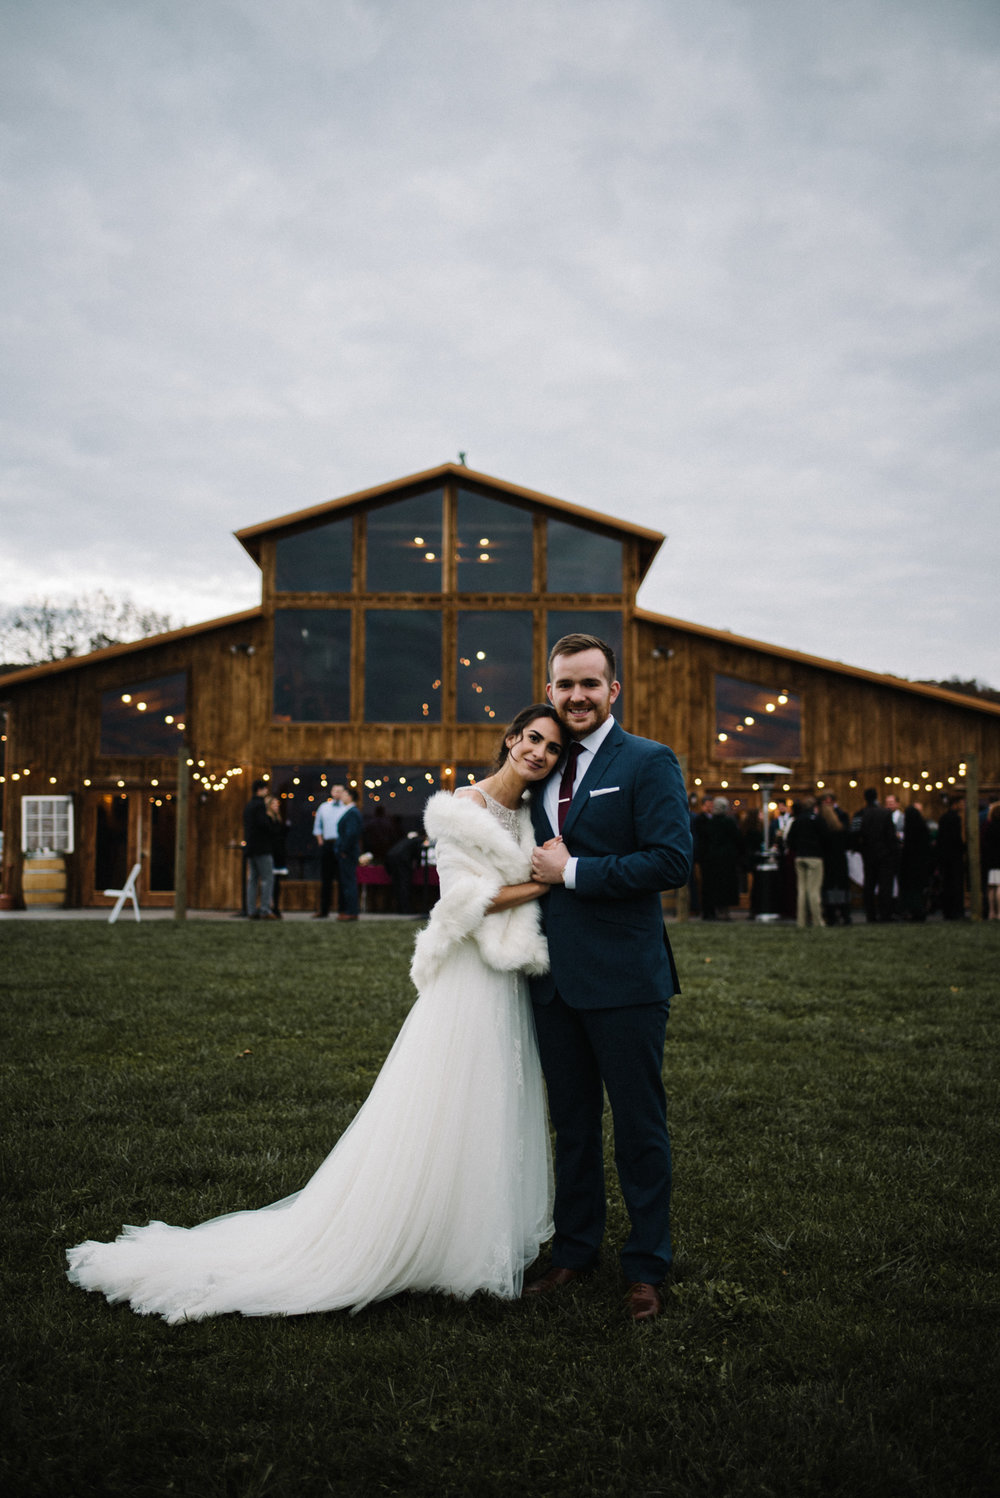 Alyssa and Jesse Winter Vineyard Wedding Luray Virginia Shenandoah Valley Faithbrooke_70.JPG